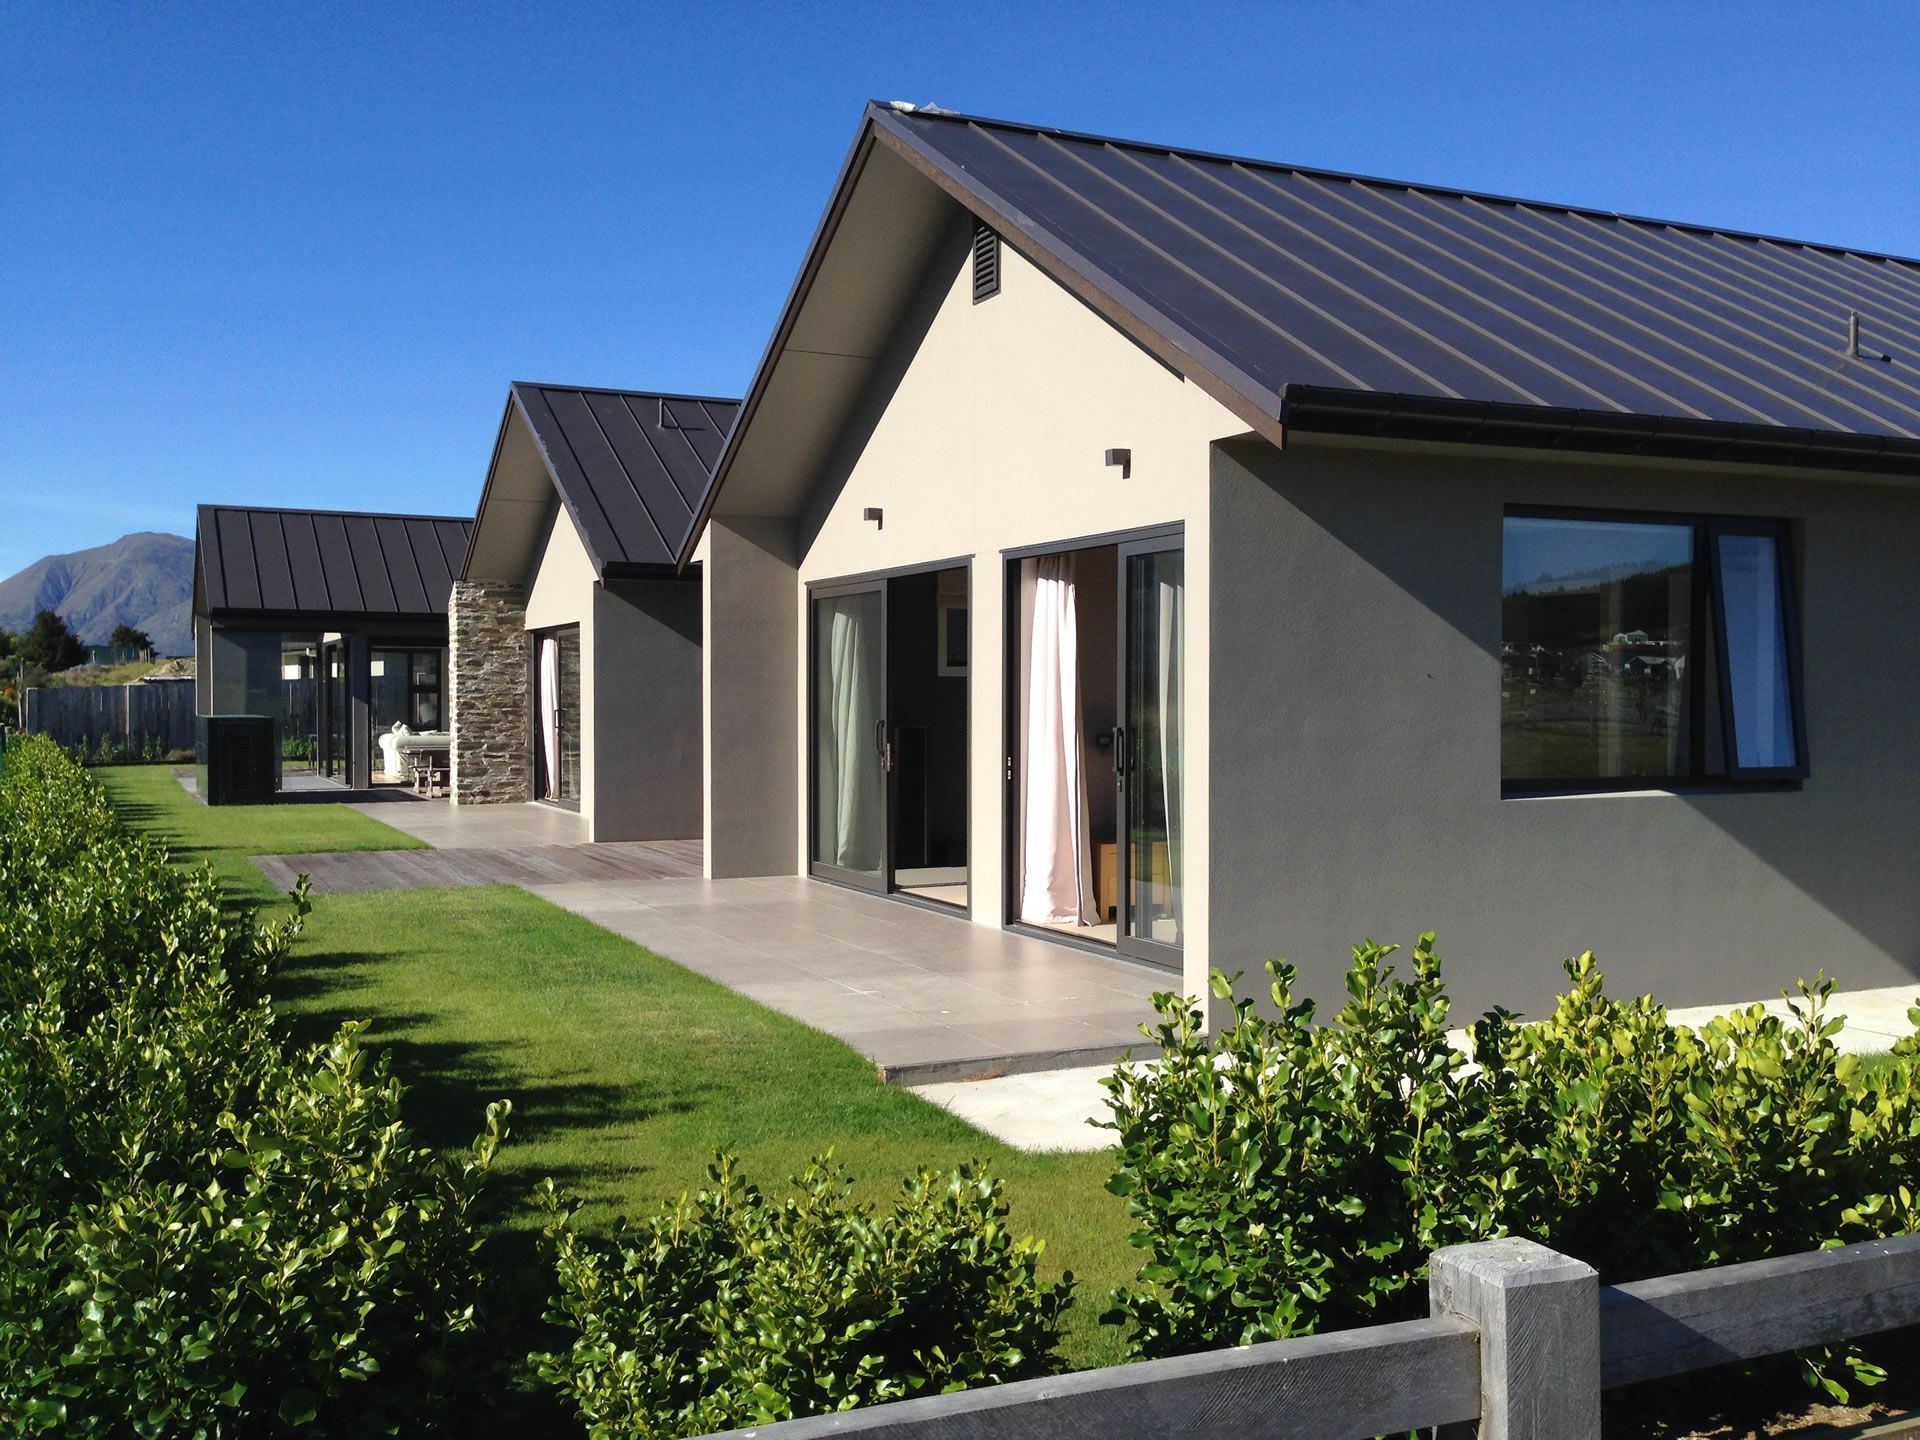 Wanaka NZ Luxury Holiday Home Rental With Views   Infinity Drive